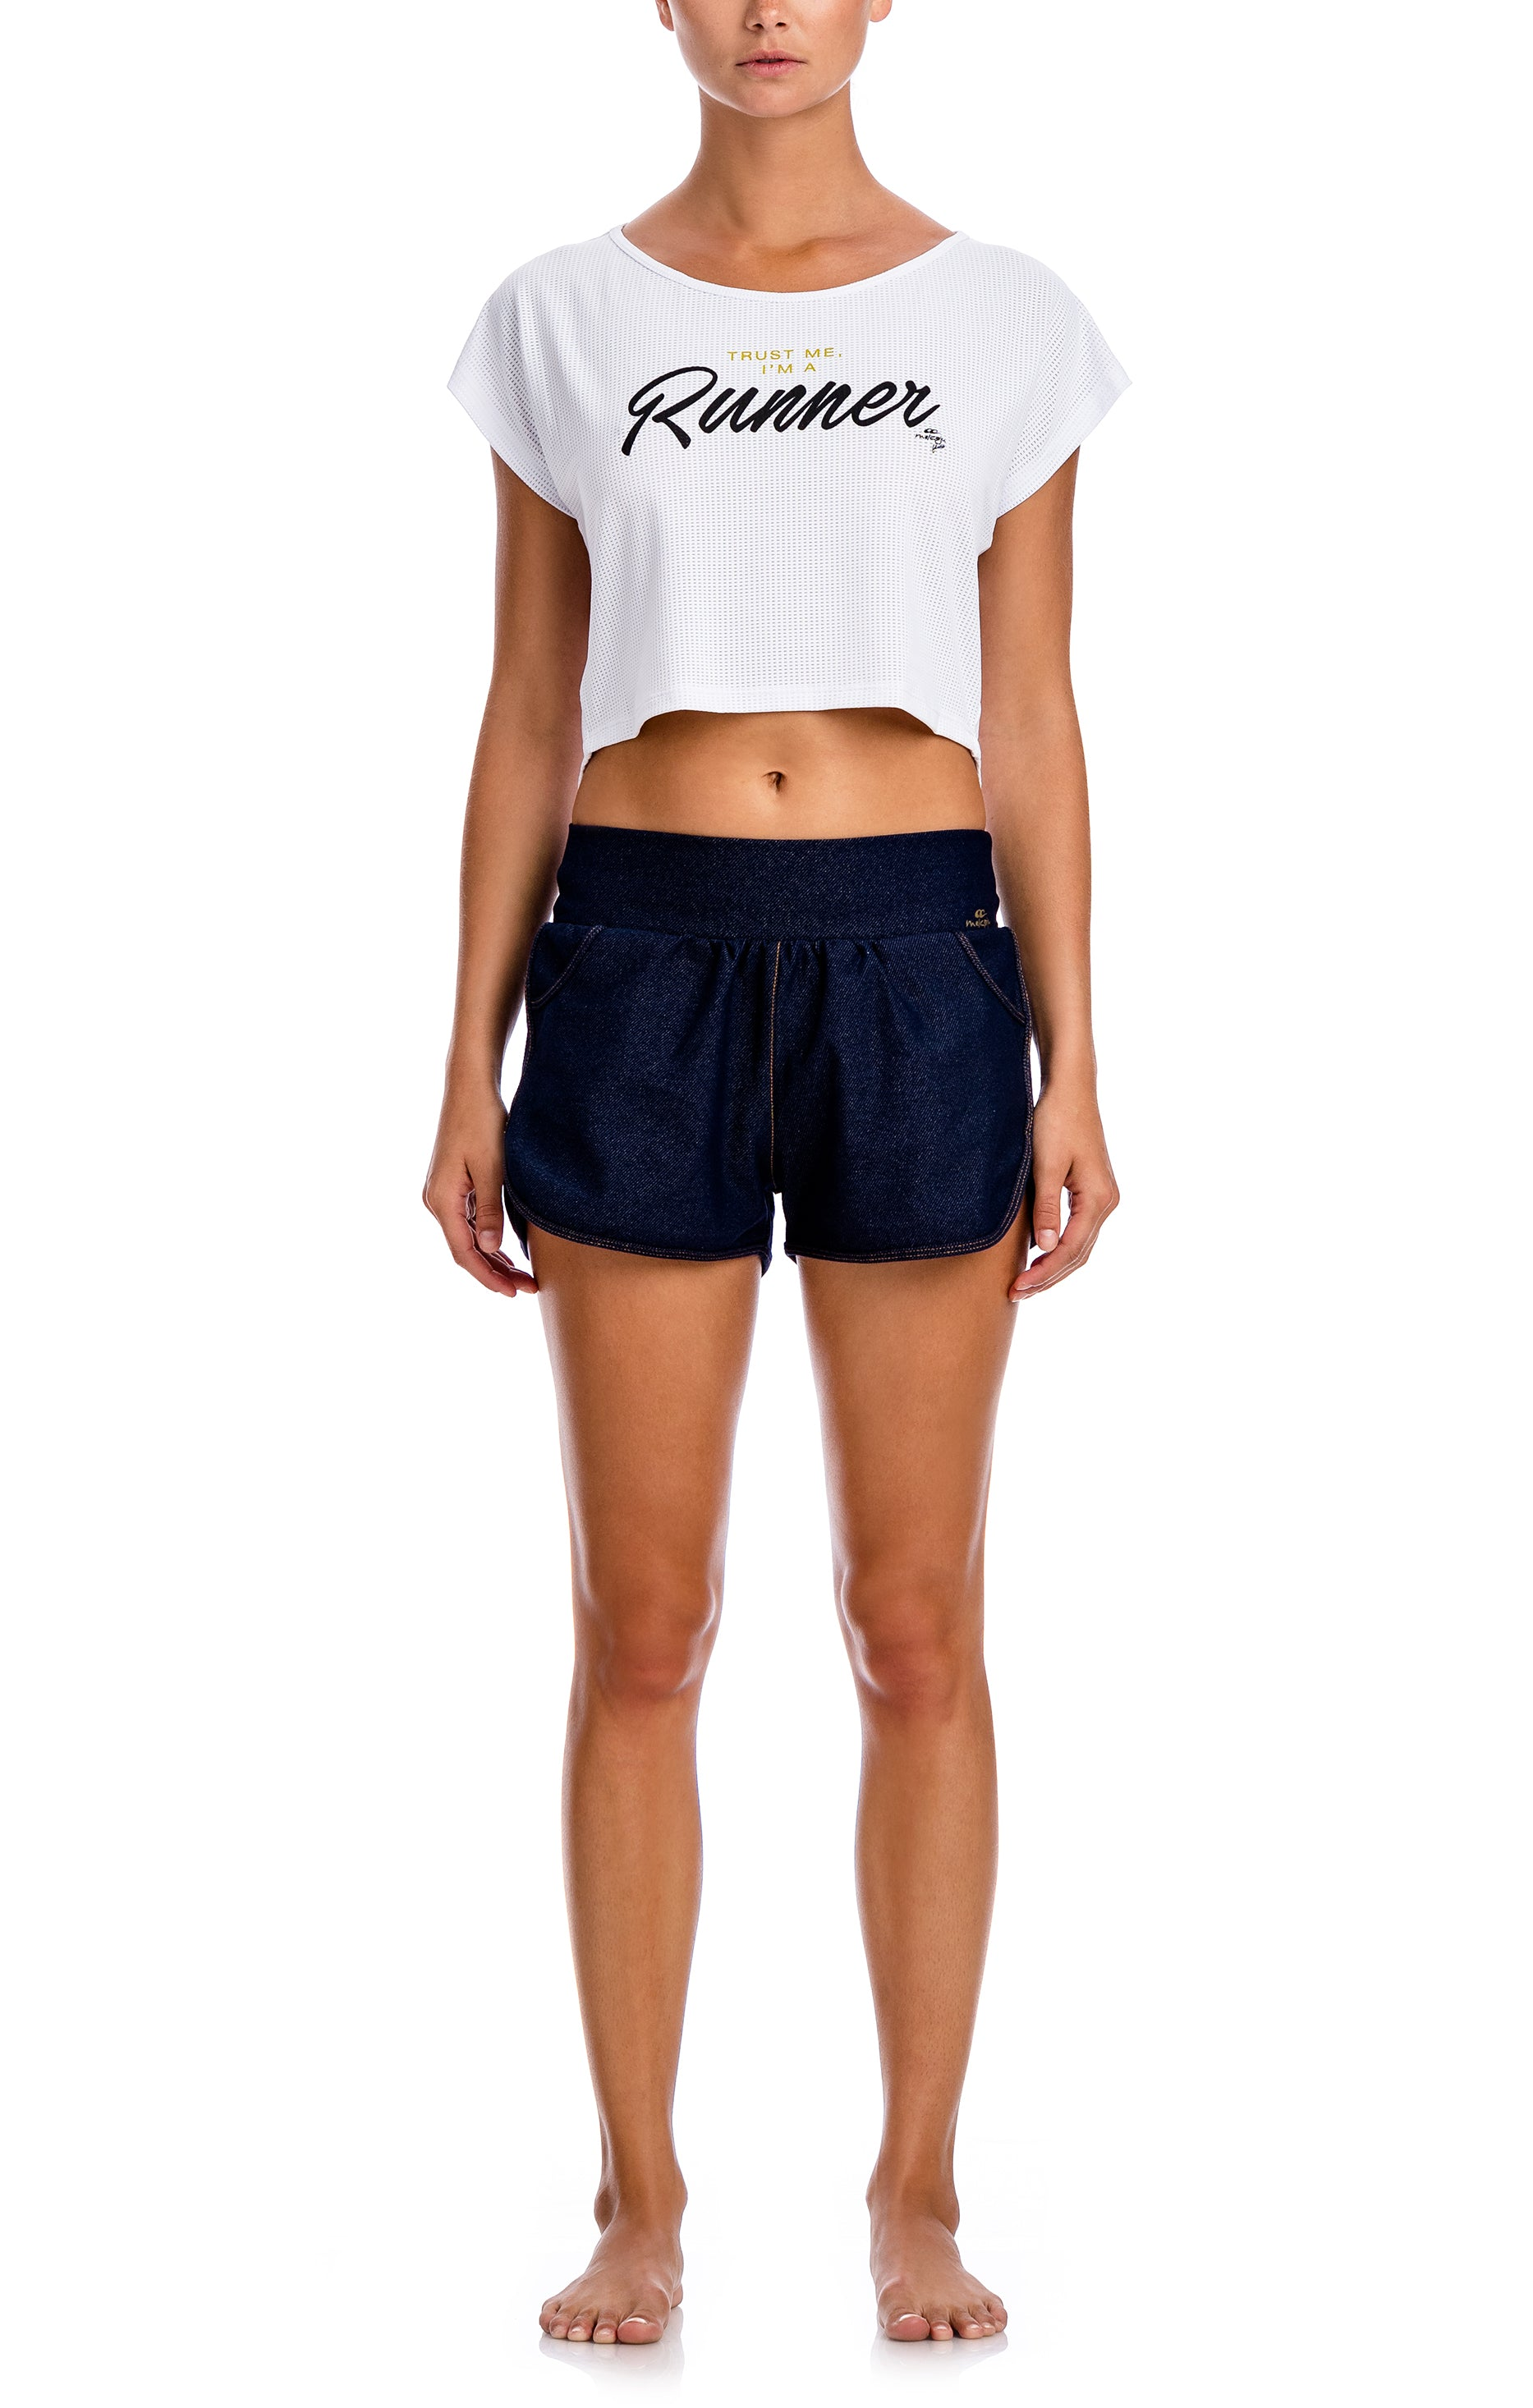 Smart Crop Top - Workout Tops